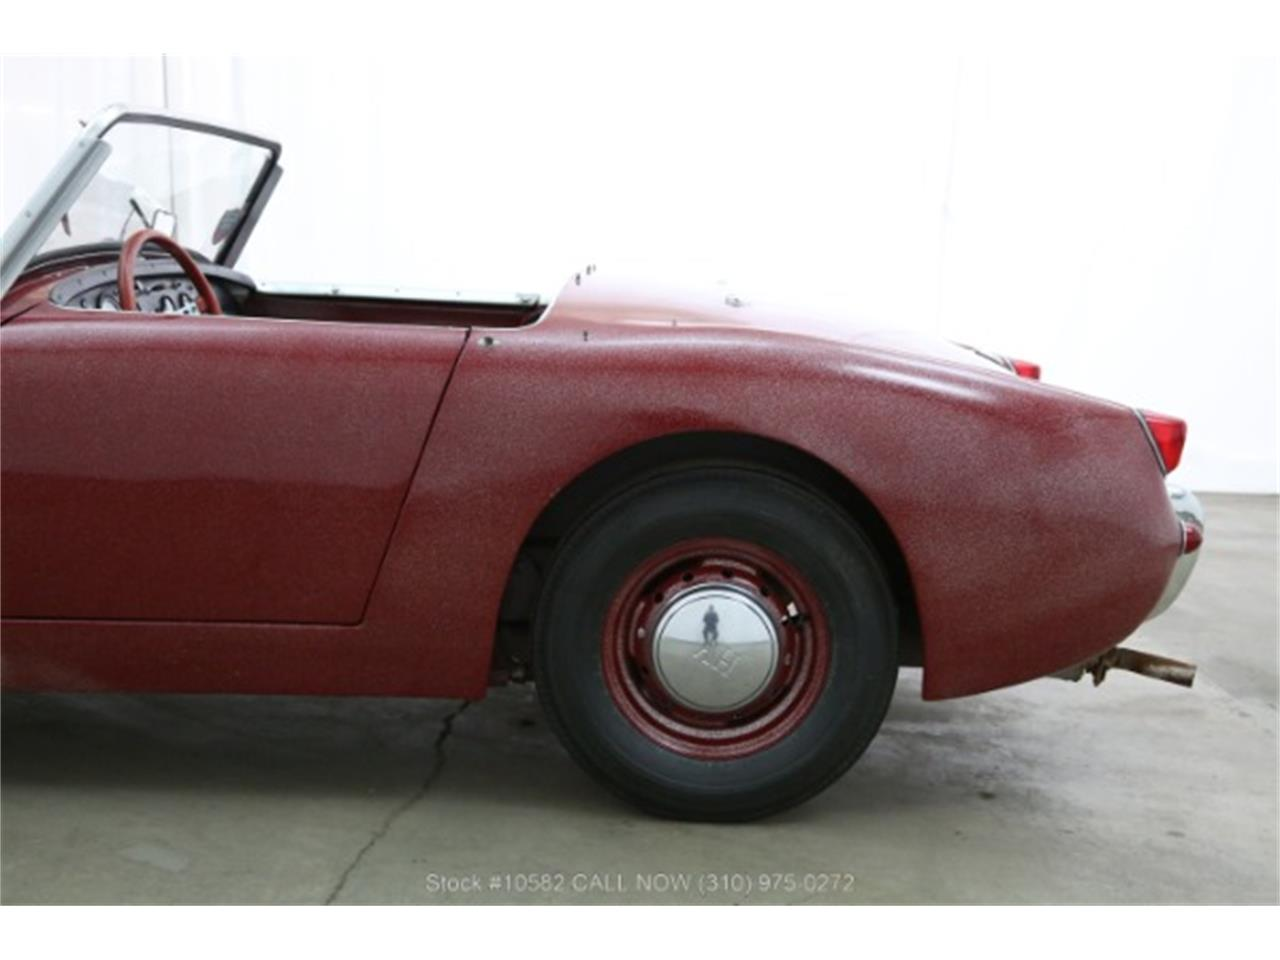 Large Picture of Classic '60 Bugeye Sprite - $9,750.00 - PKL4